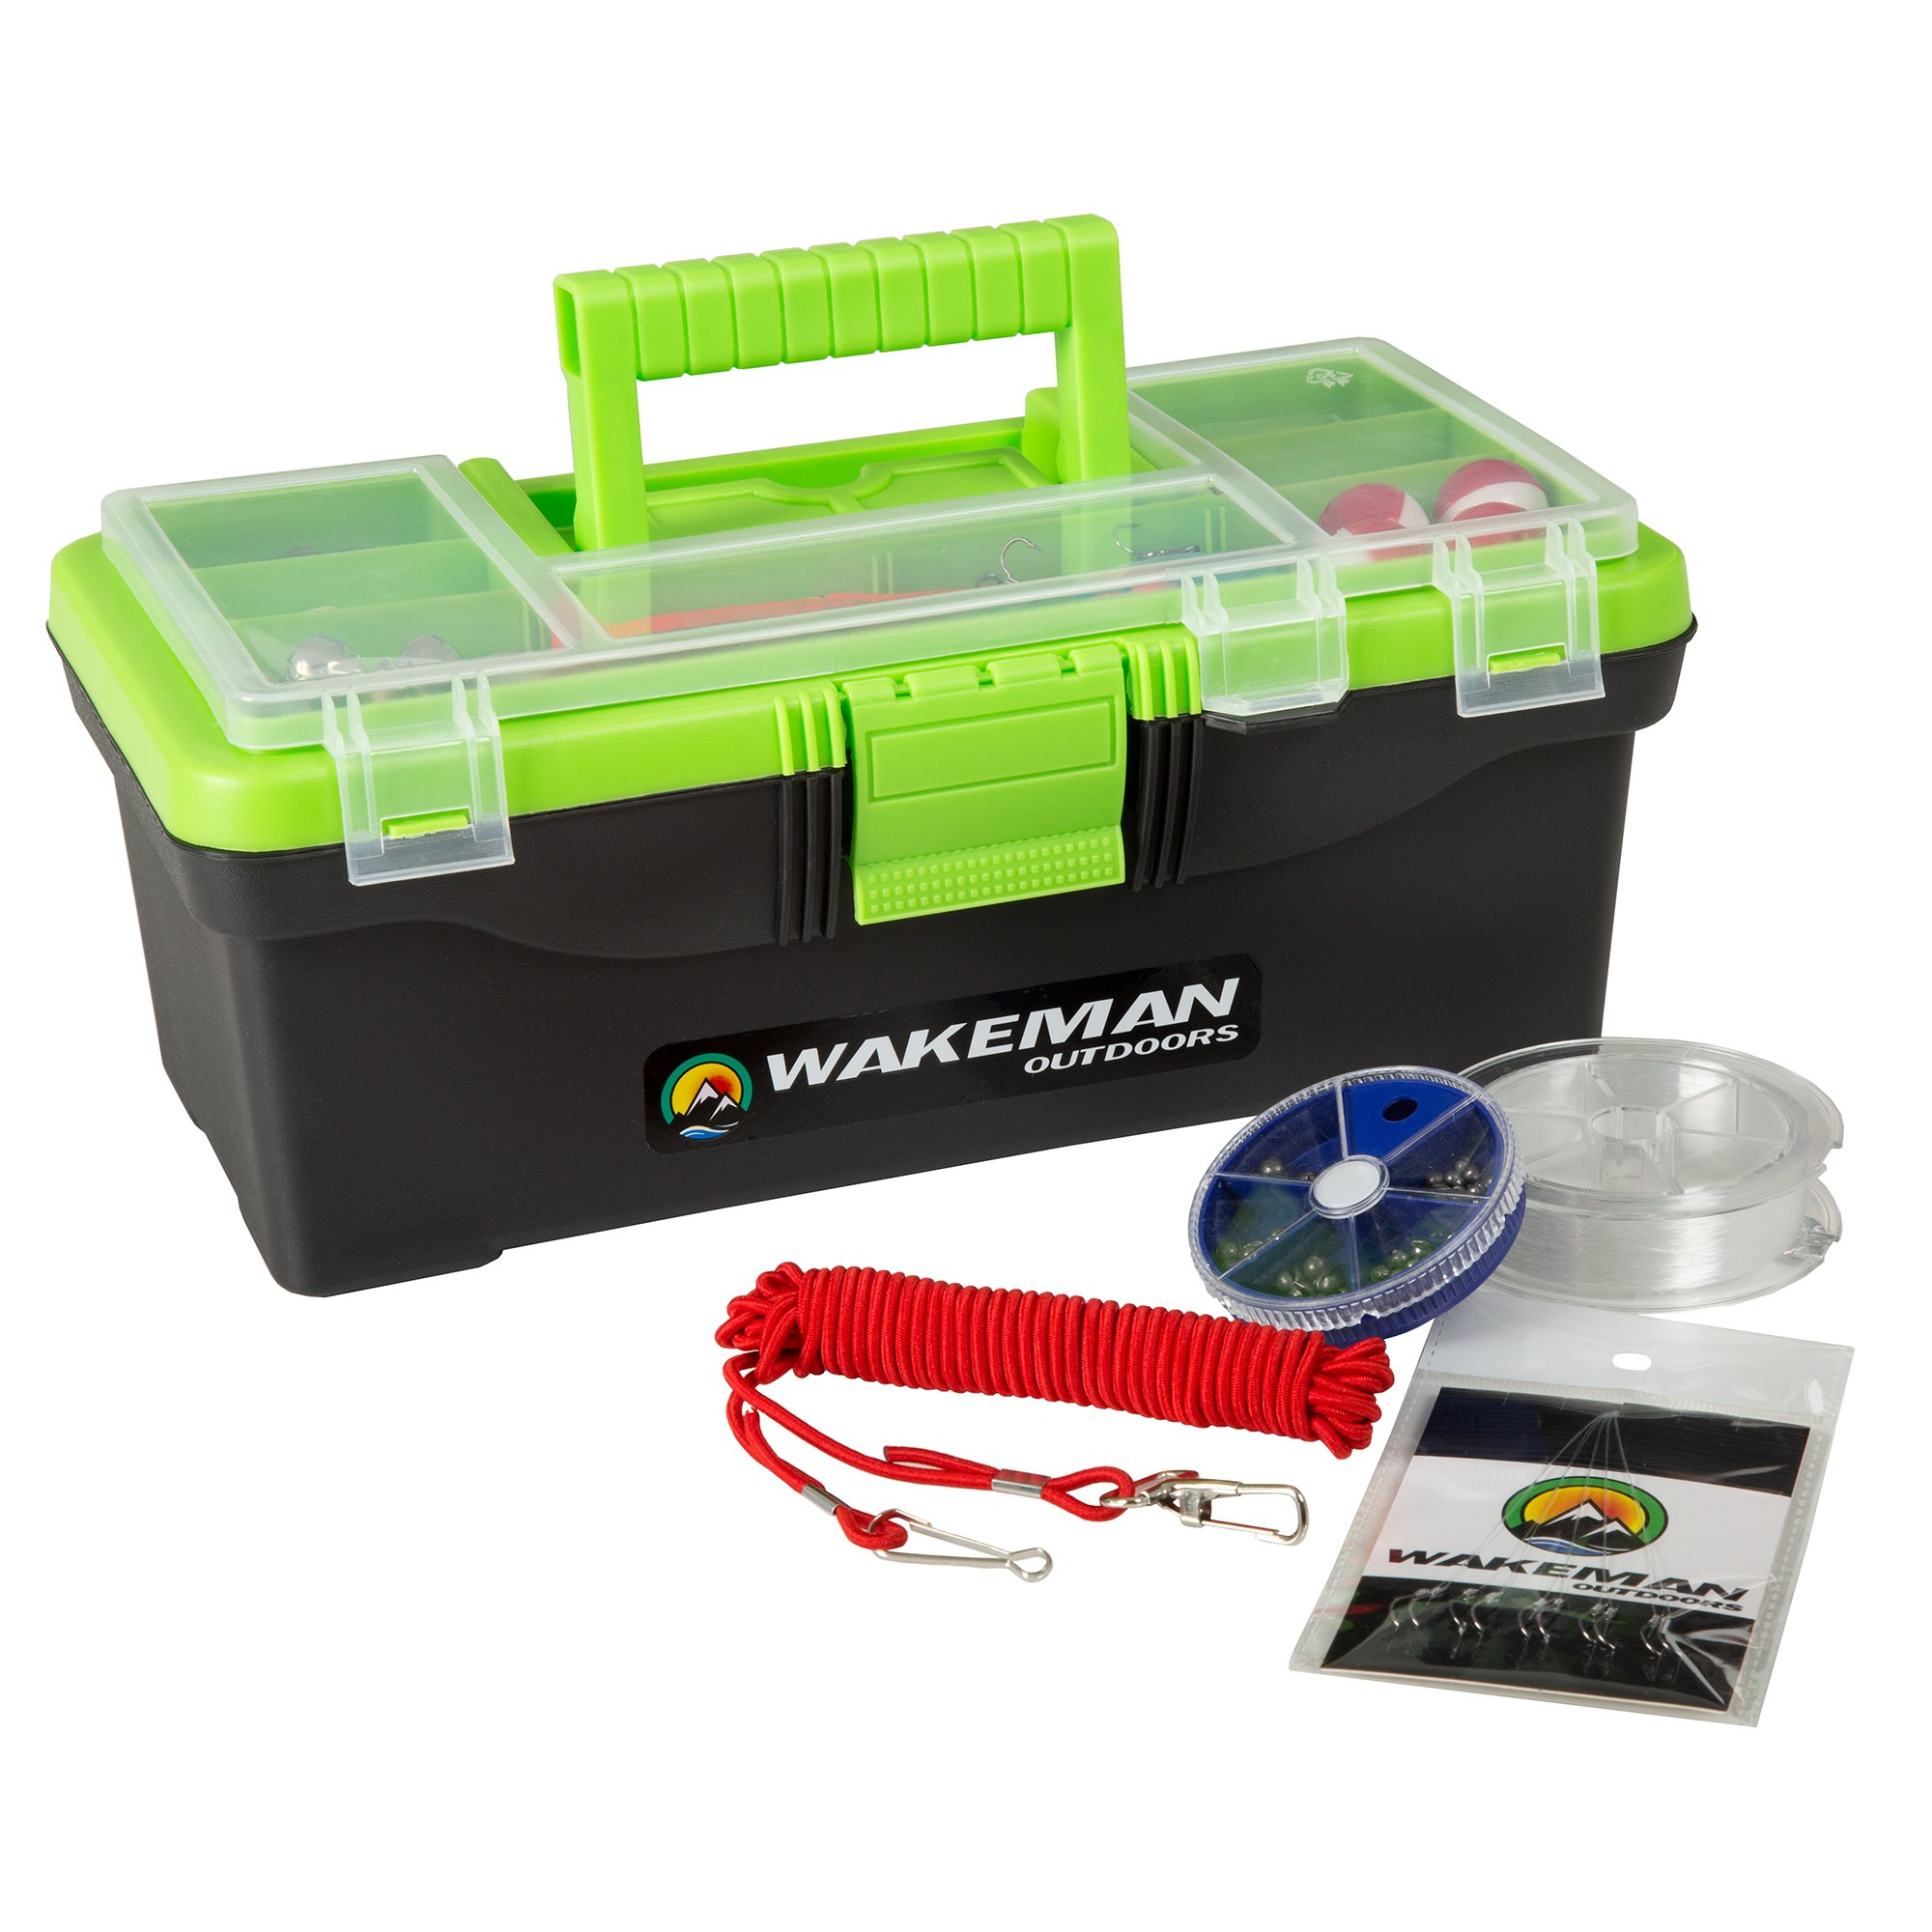 Fishing Single Tray Tackle Box- 55 Piece Tackle Gear Kit Includes Sinkers, Hooks Lures Bobbers Swivels and Fishing Line By Wakeman Outdoors Lime Green by Wakeman